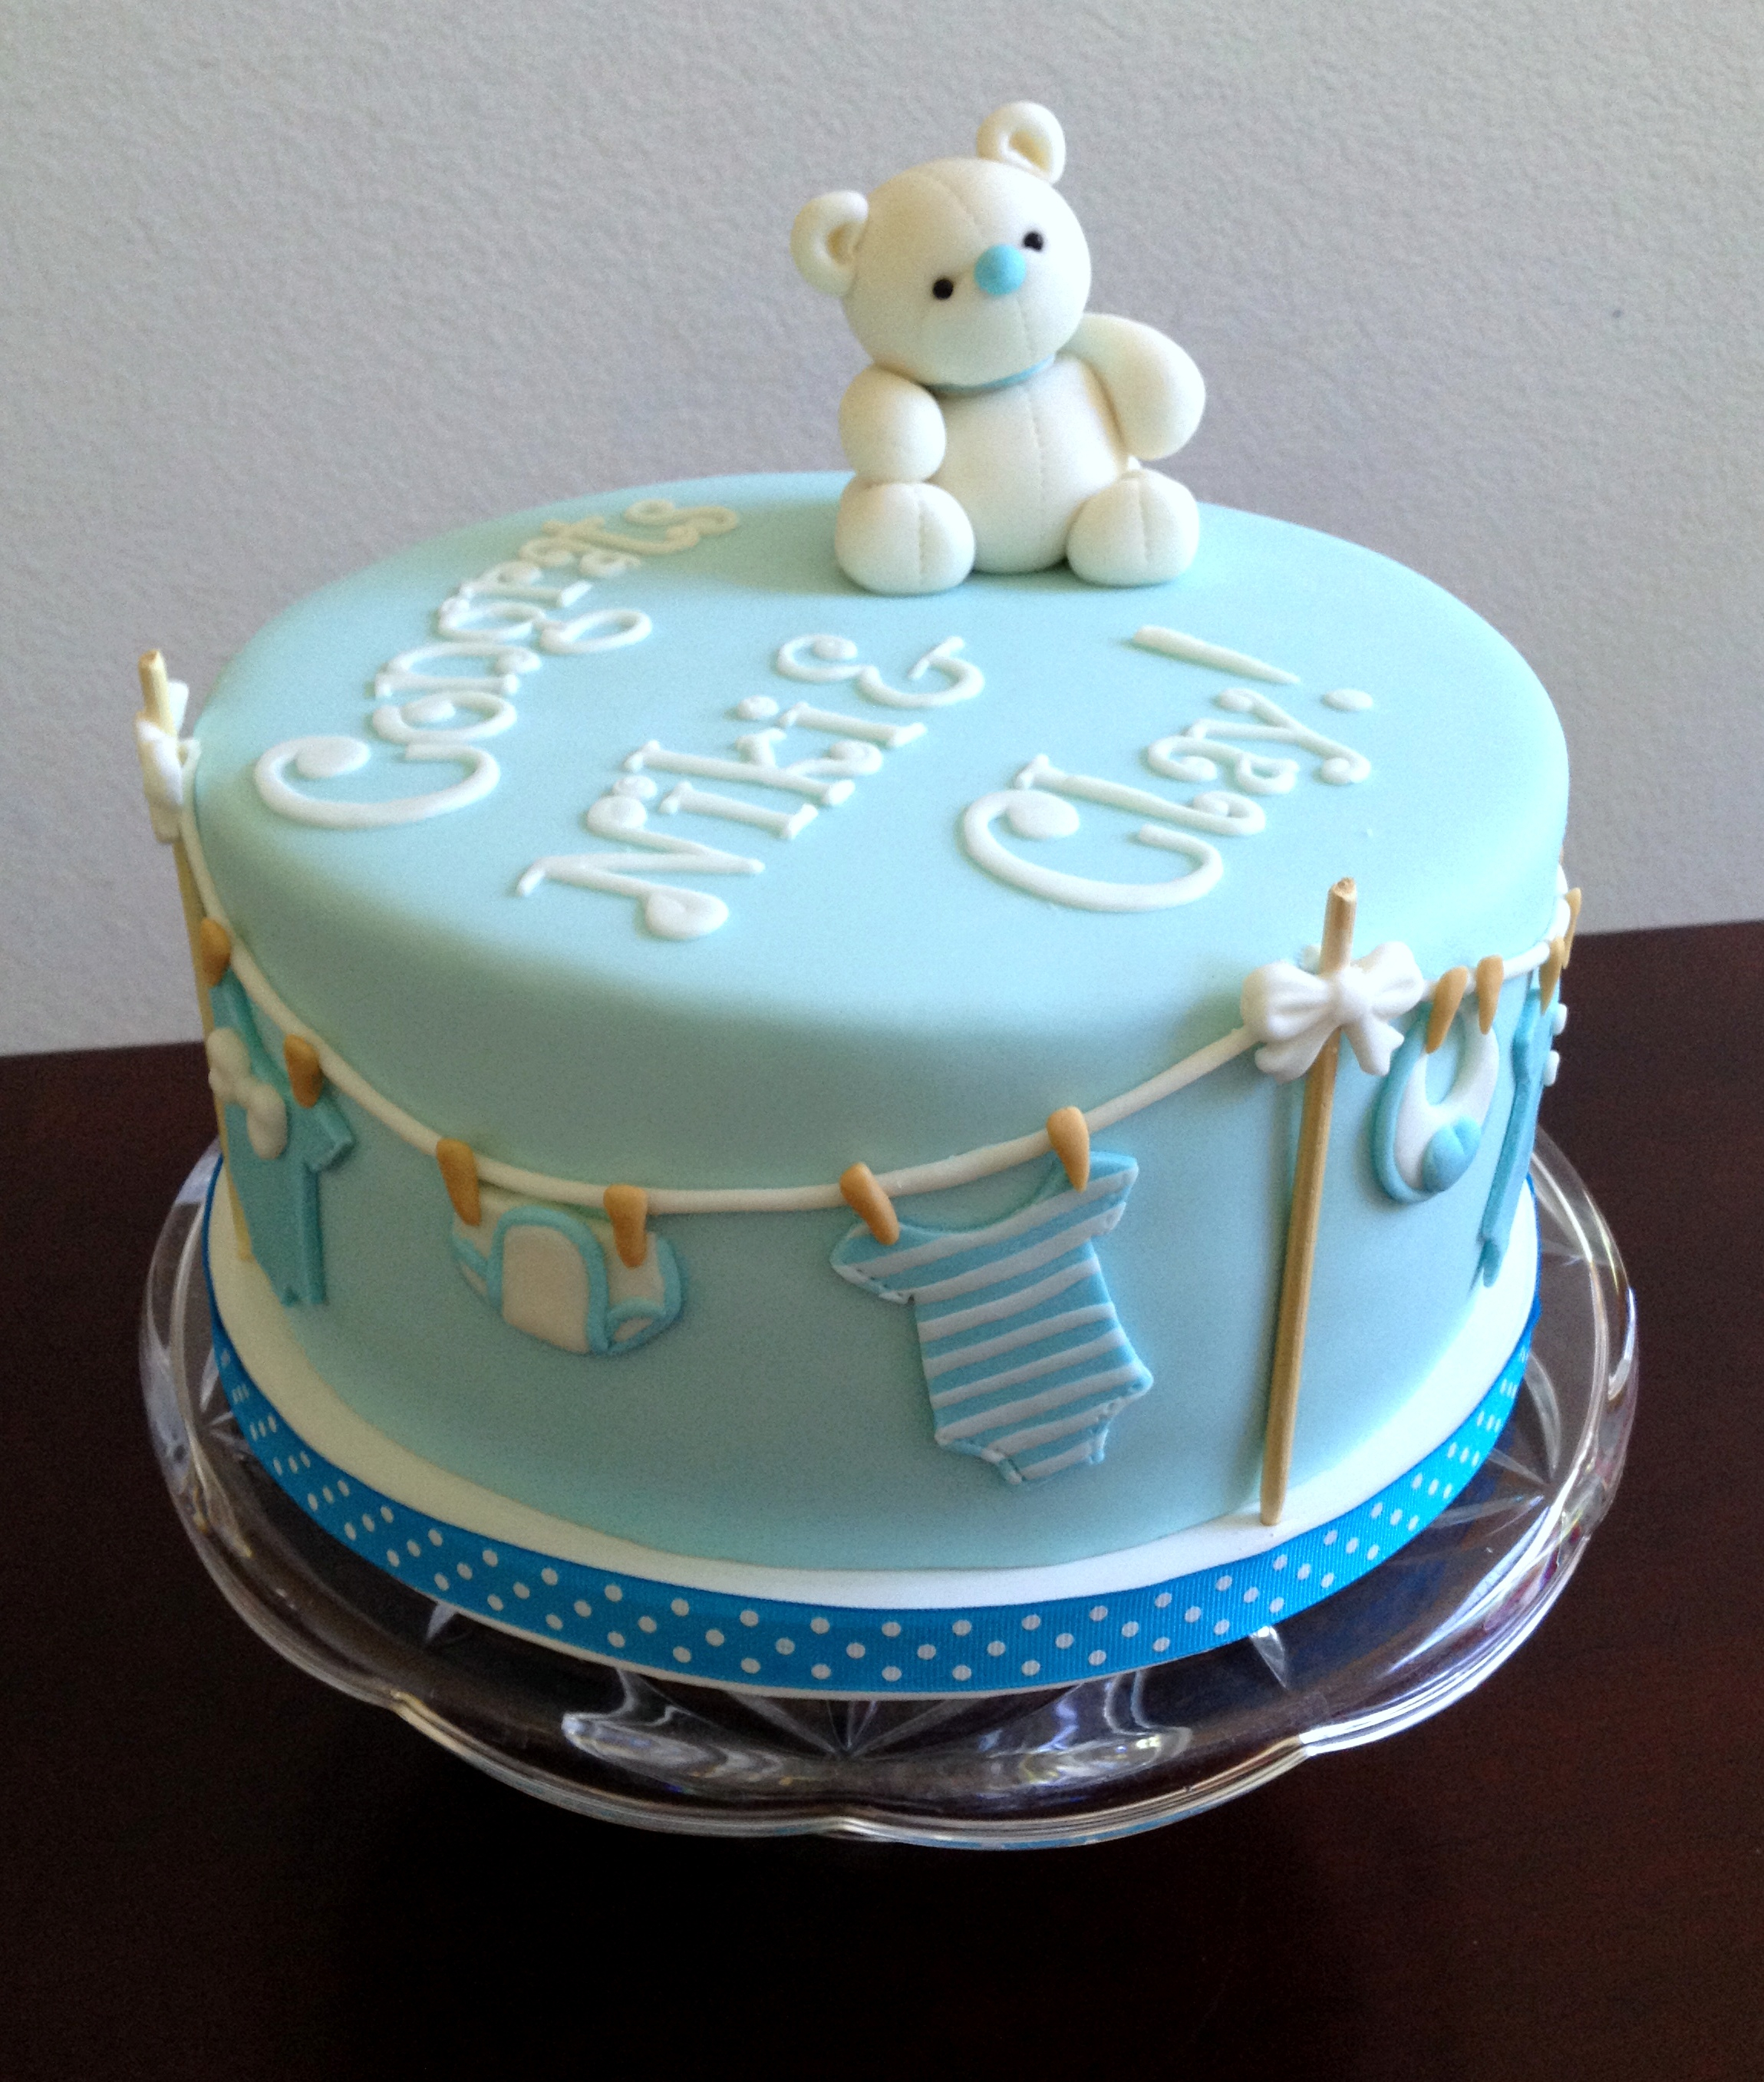 Fancy Best Cakes In The Palm Beaches The Cake Lady Of West Palm Beach Baby intended for Baby Boy Shower Cakes